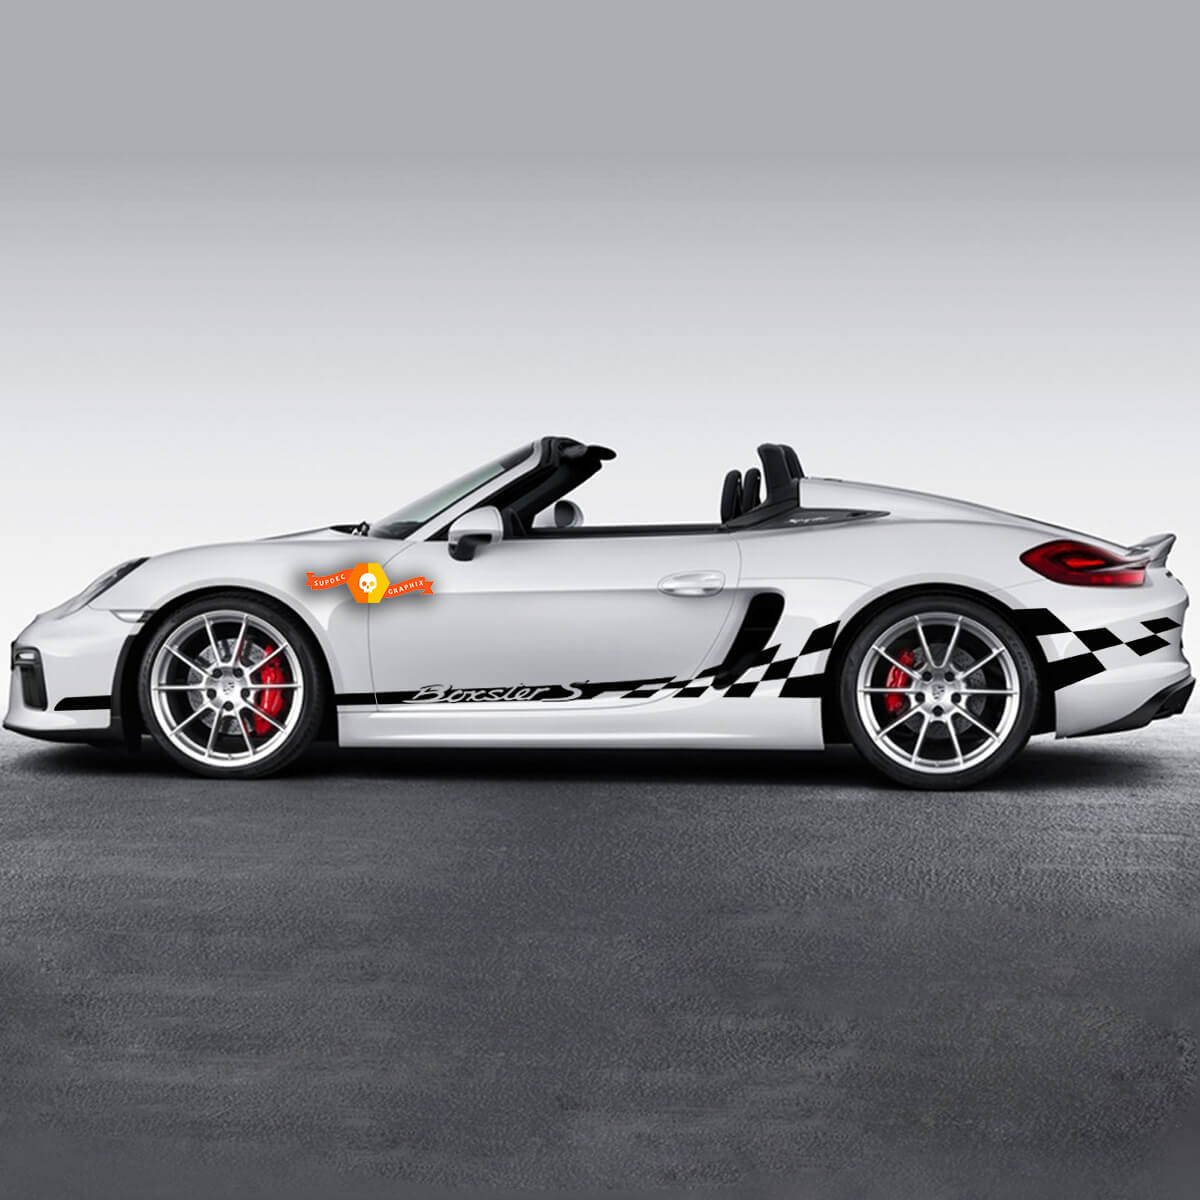 Porsche Side Сheckered Flag Side Stripes Graphics Decal For Boxster S Or Any Porsche